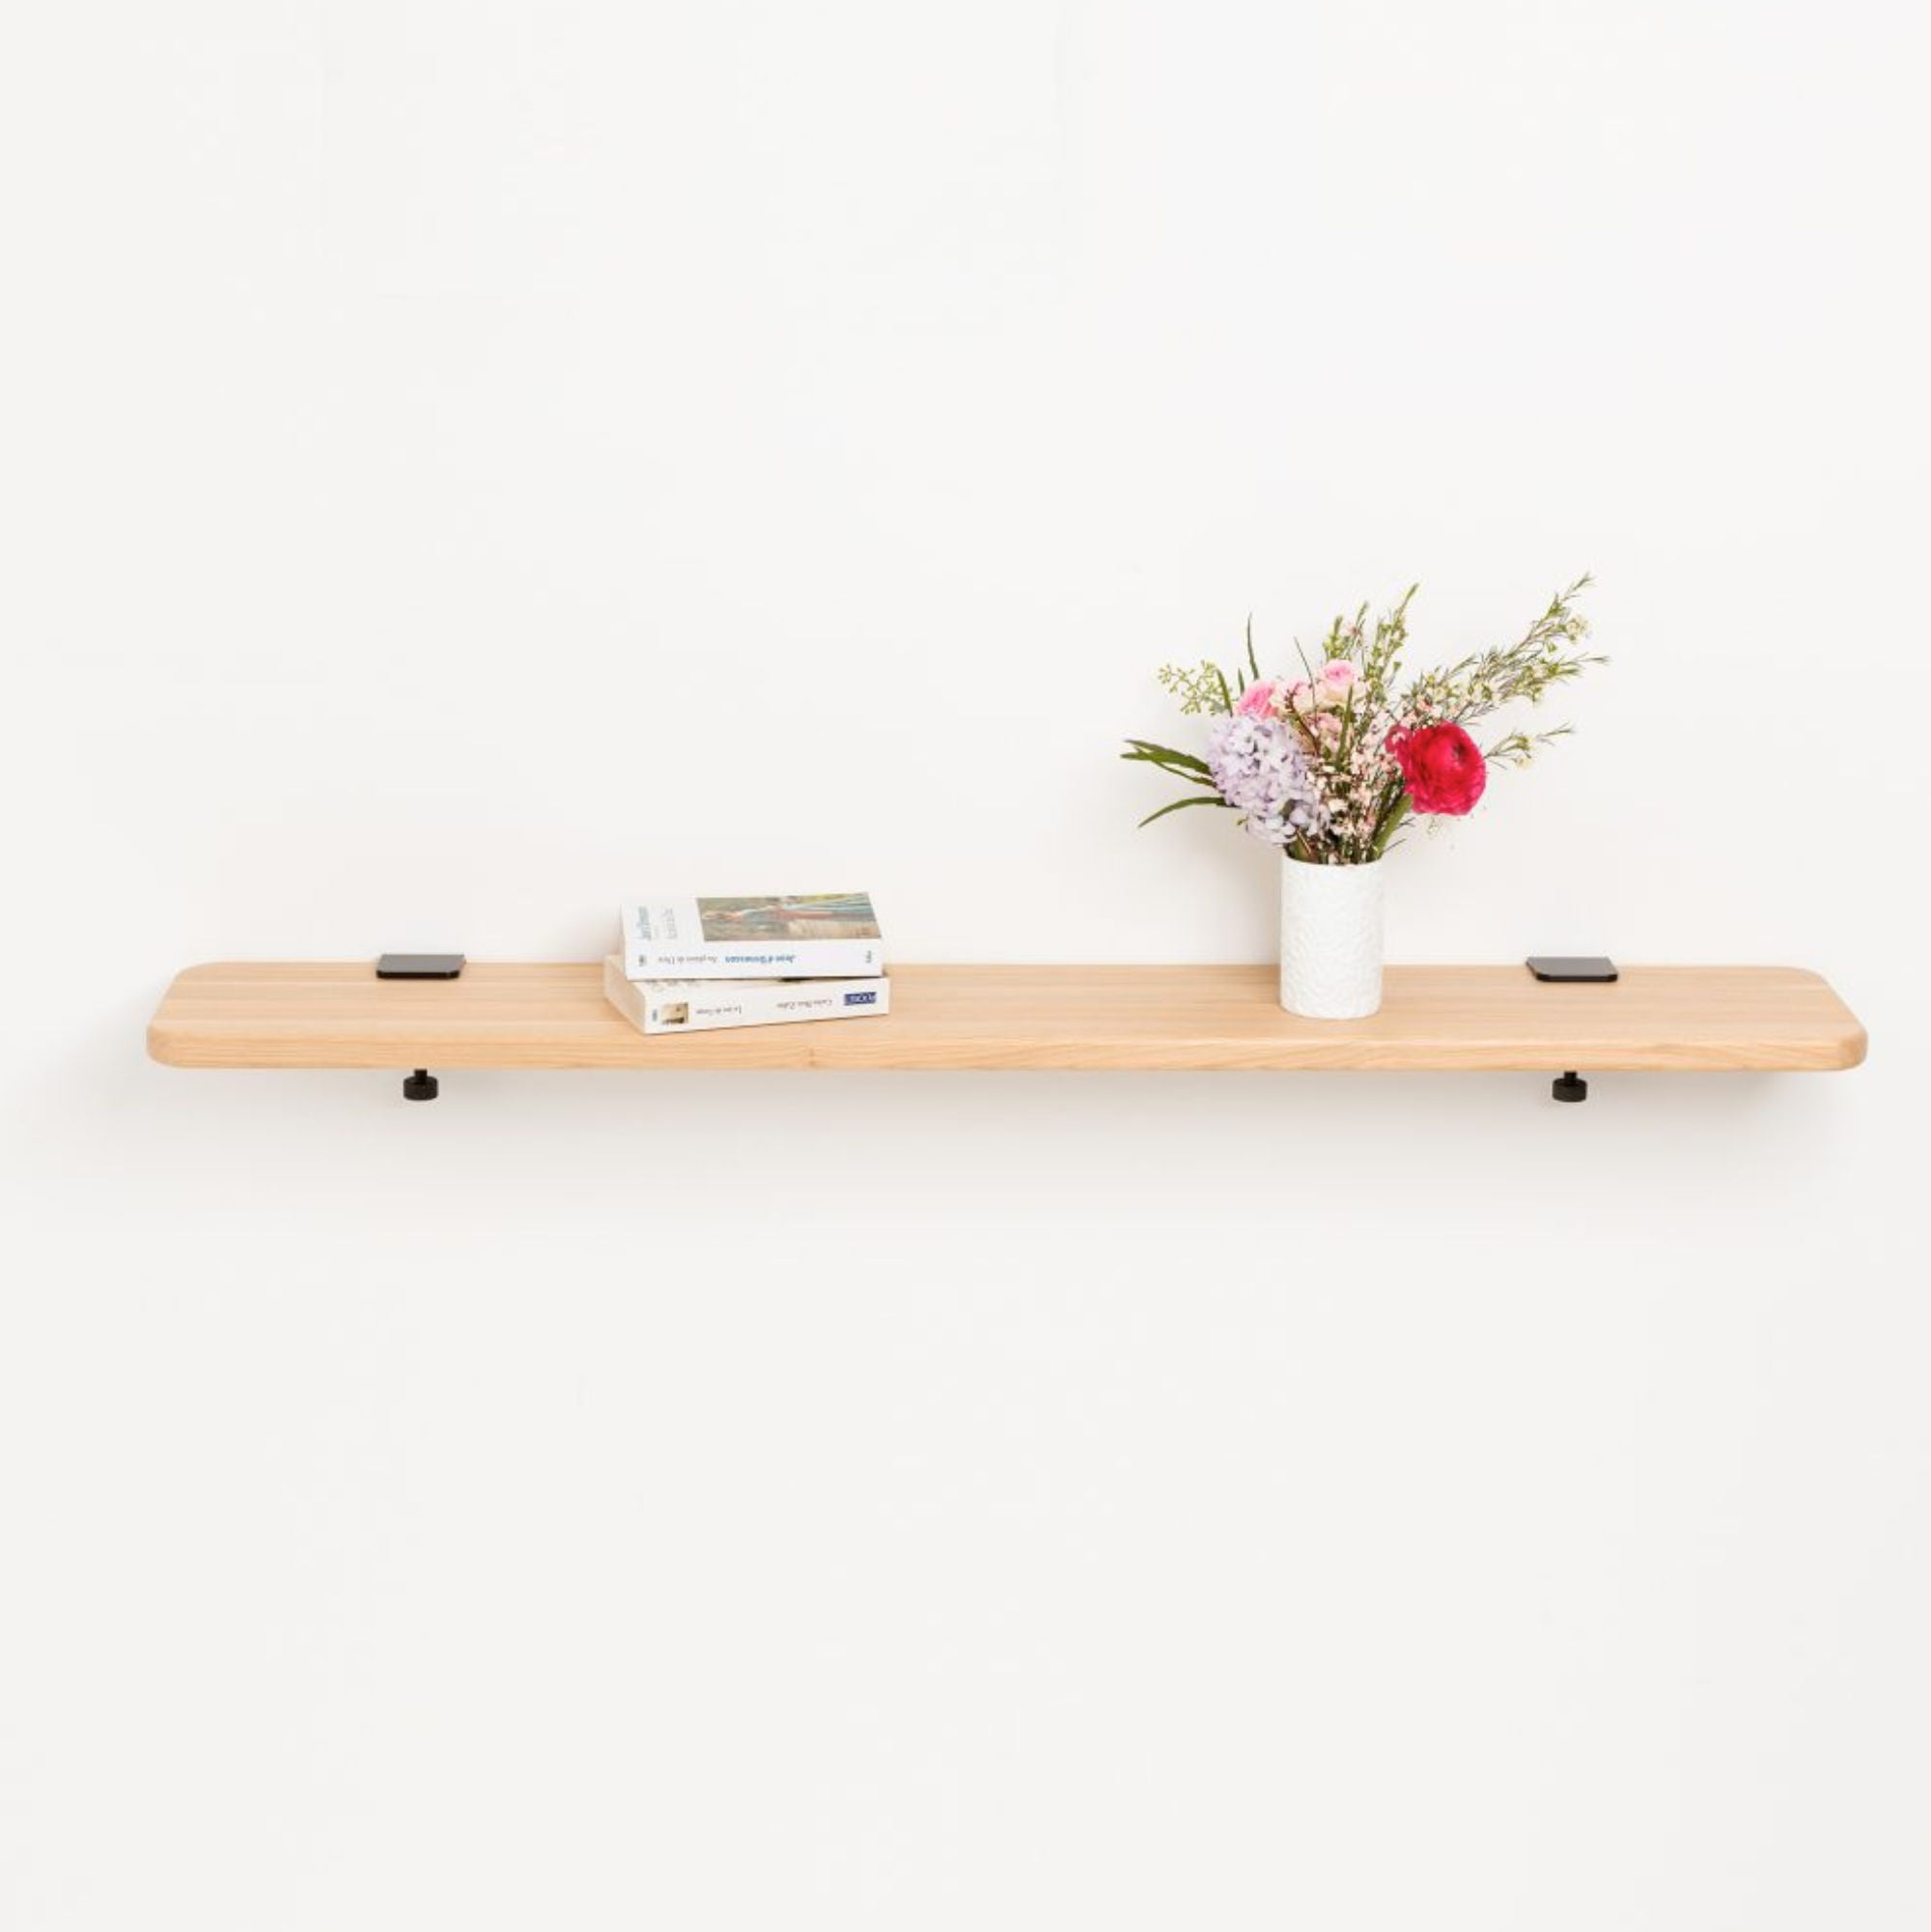 Tiptoe Solid oak shelf, 120 * 20cm